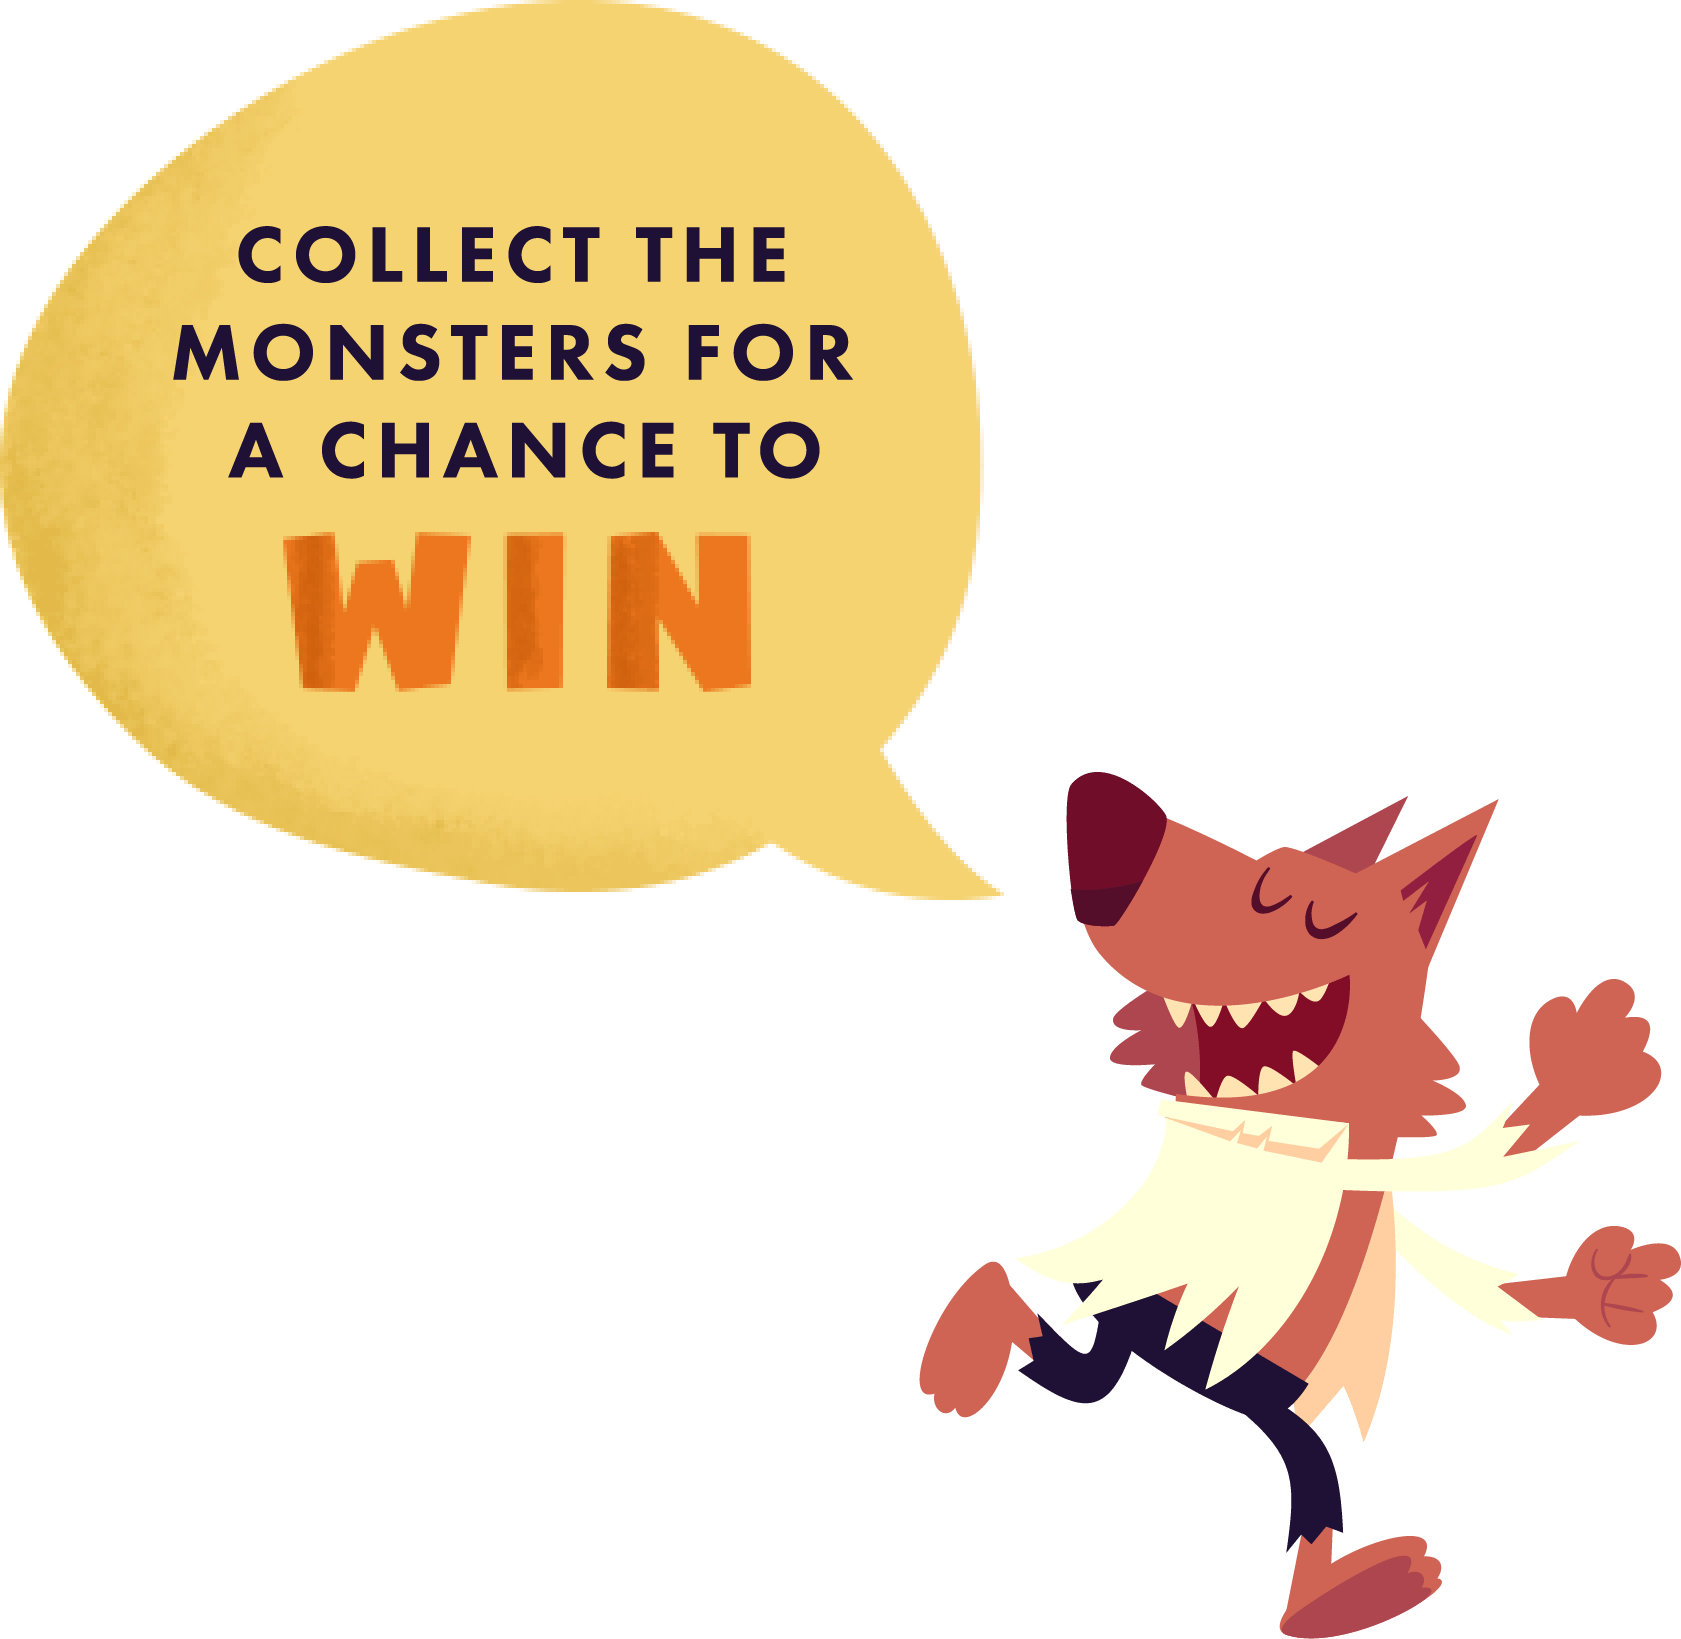 Collect the monsters for a chance to win